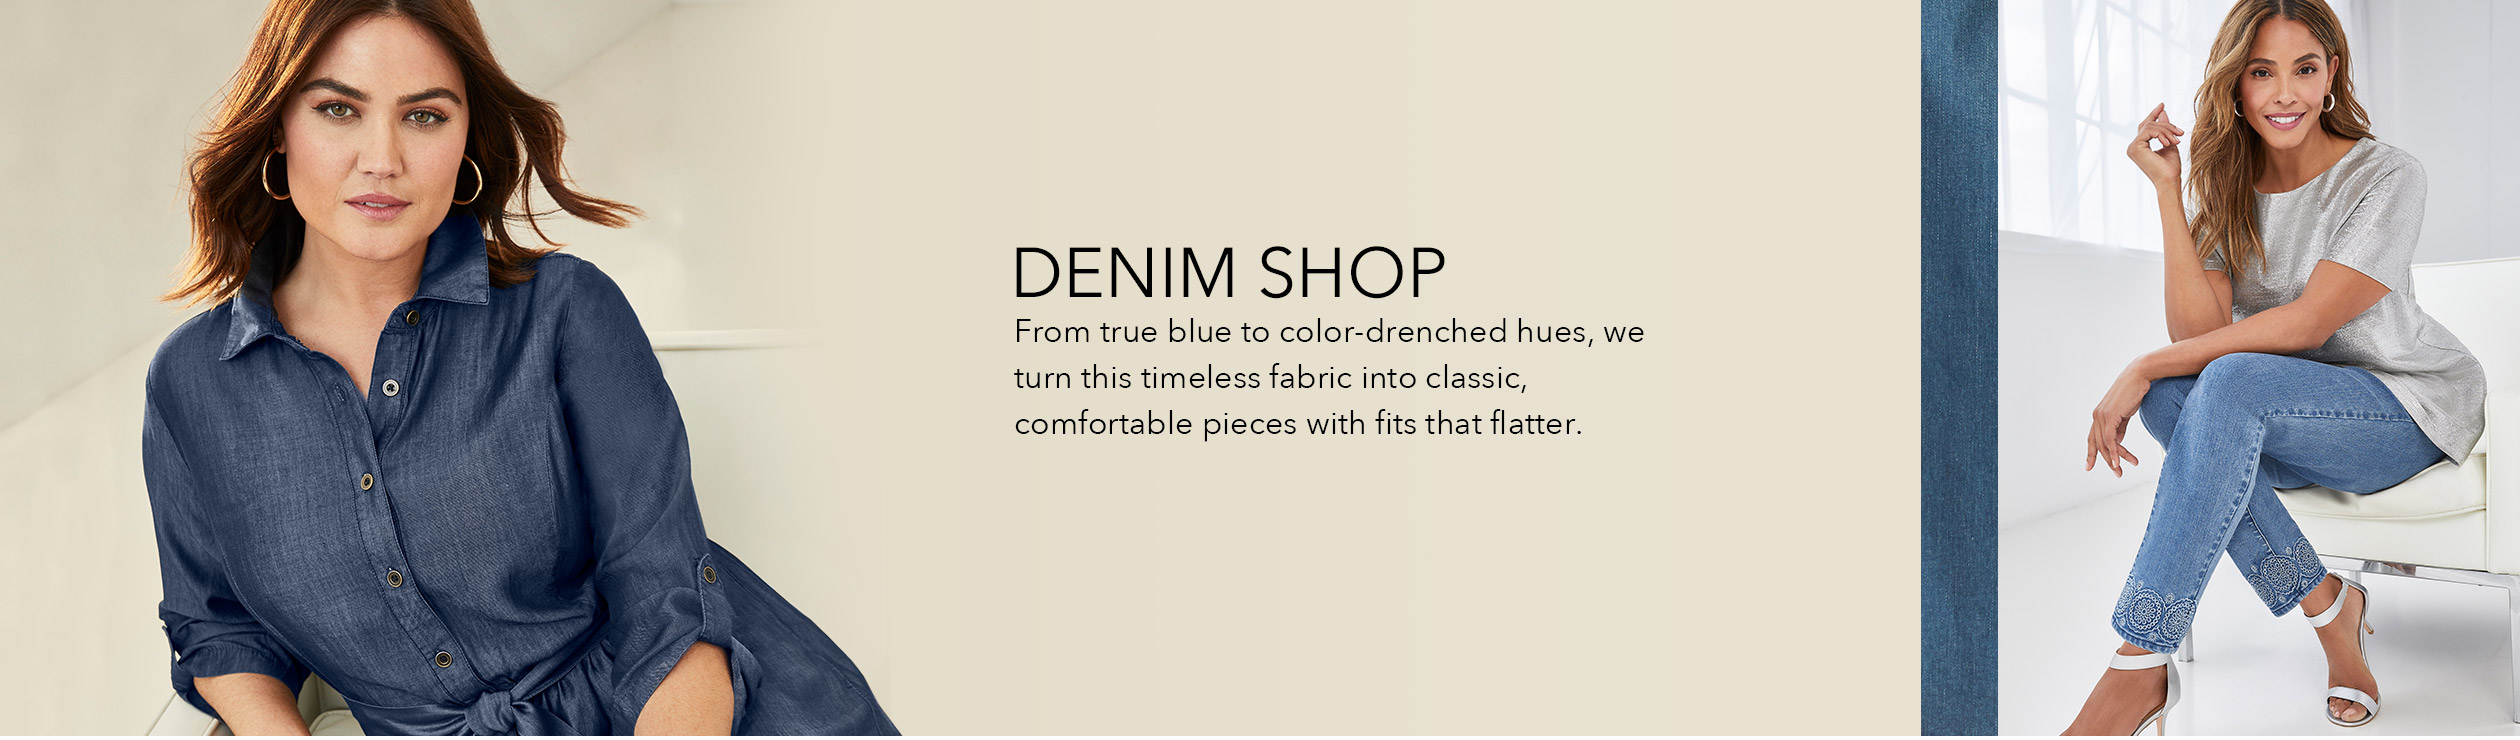 Denim Shop | From true blue to color-drenched hues, we turn this timeless fabric into classic, comfortable pieces with fits that flatter.